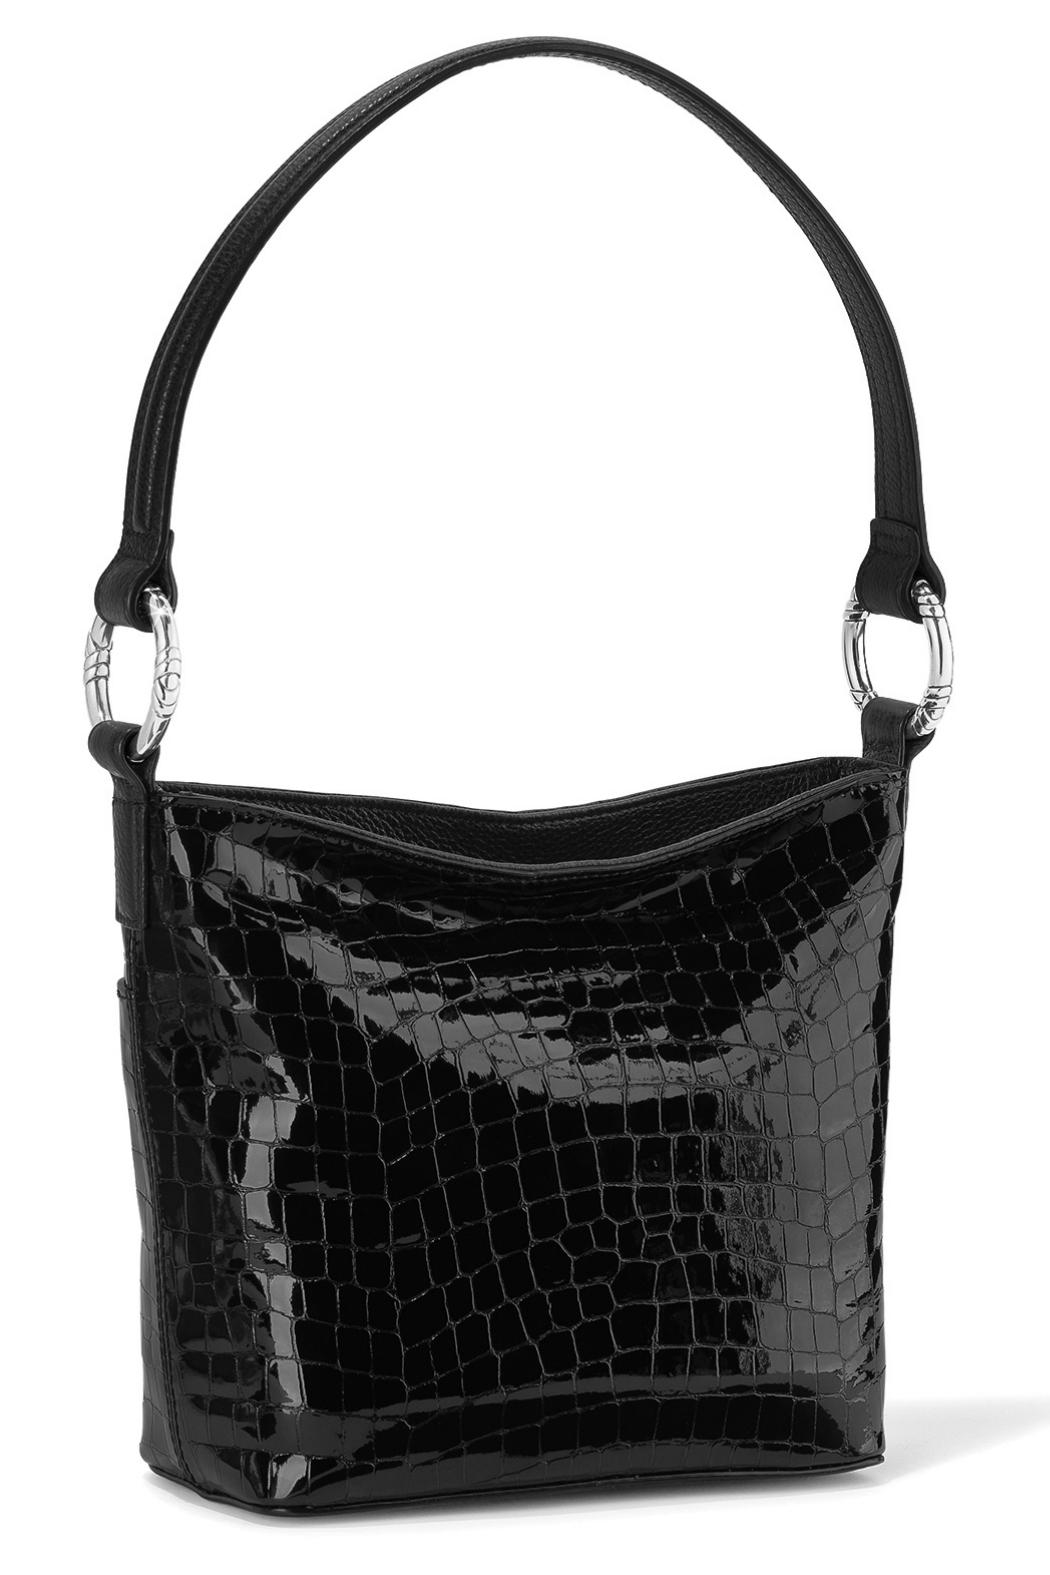 47695a6692 Brighton Cherie Soft Shoulderbag from Alaska by Apricot Lane ...